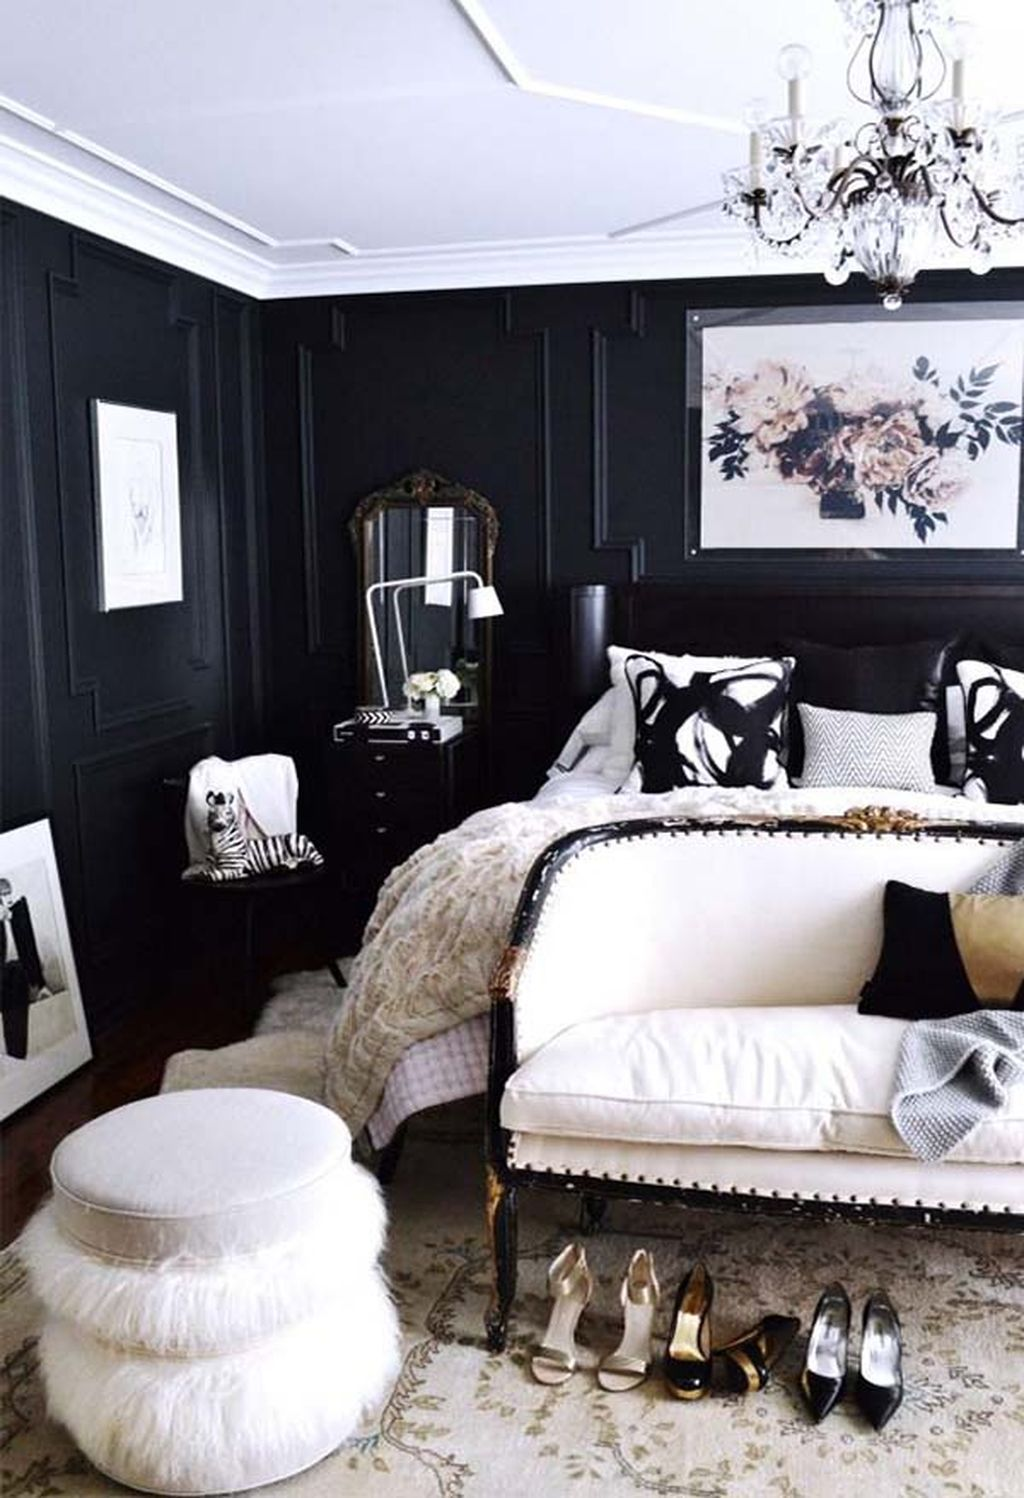 60+ Best Stylish Black And White Bedroom Ideas Home